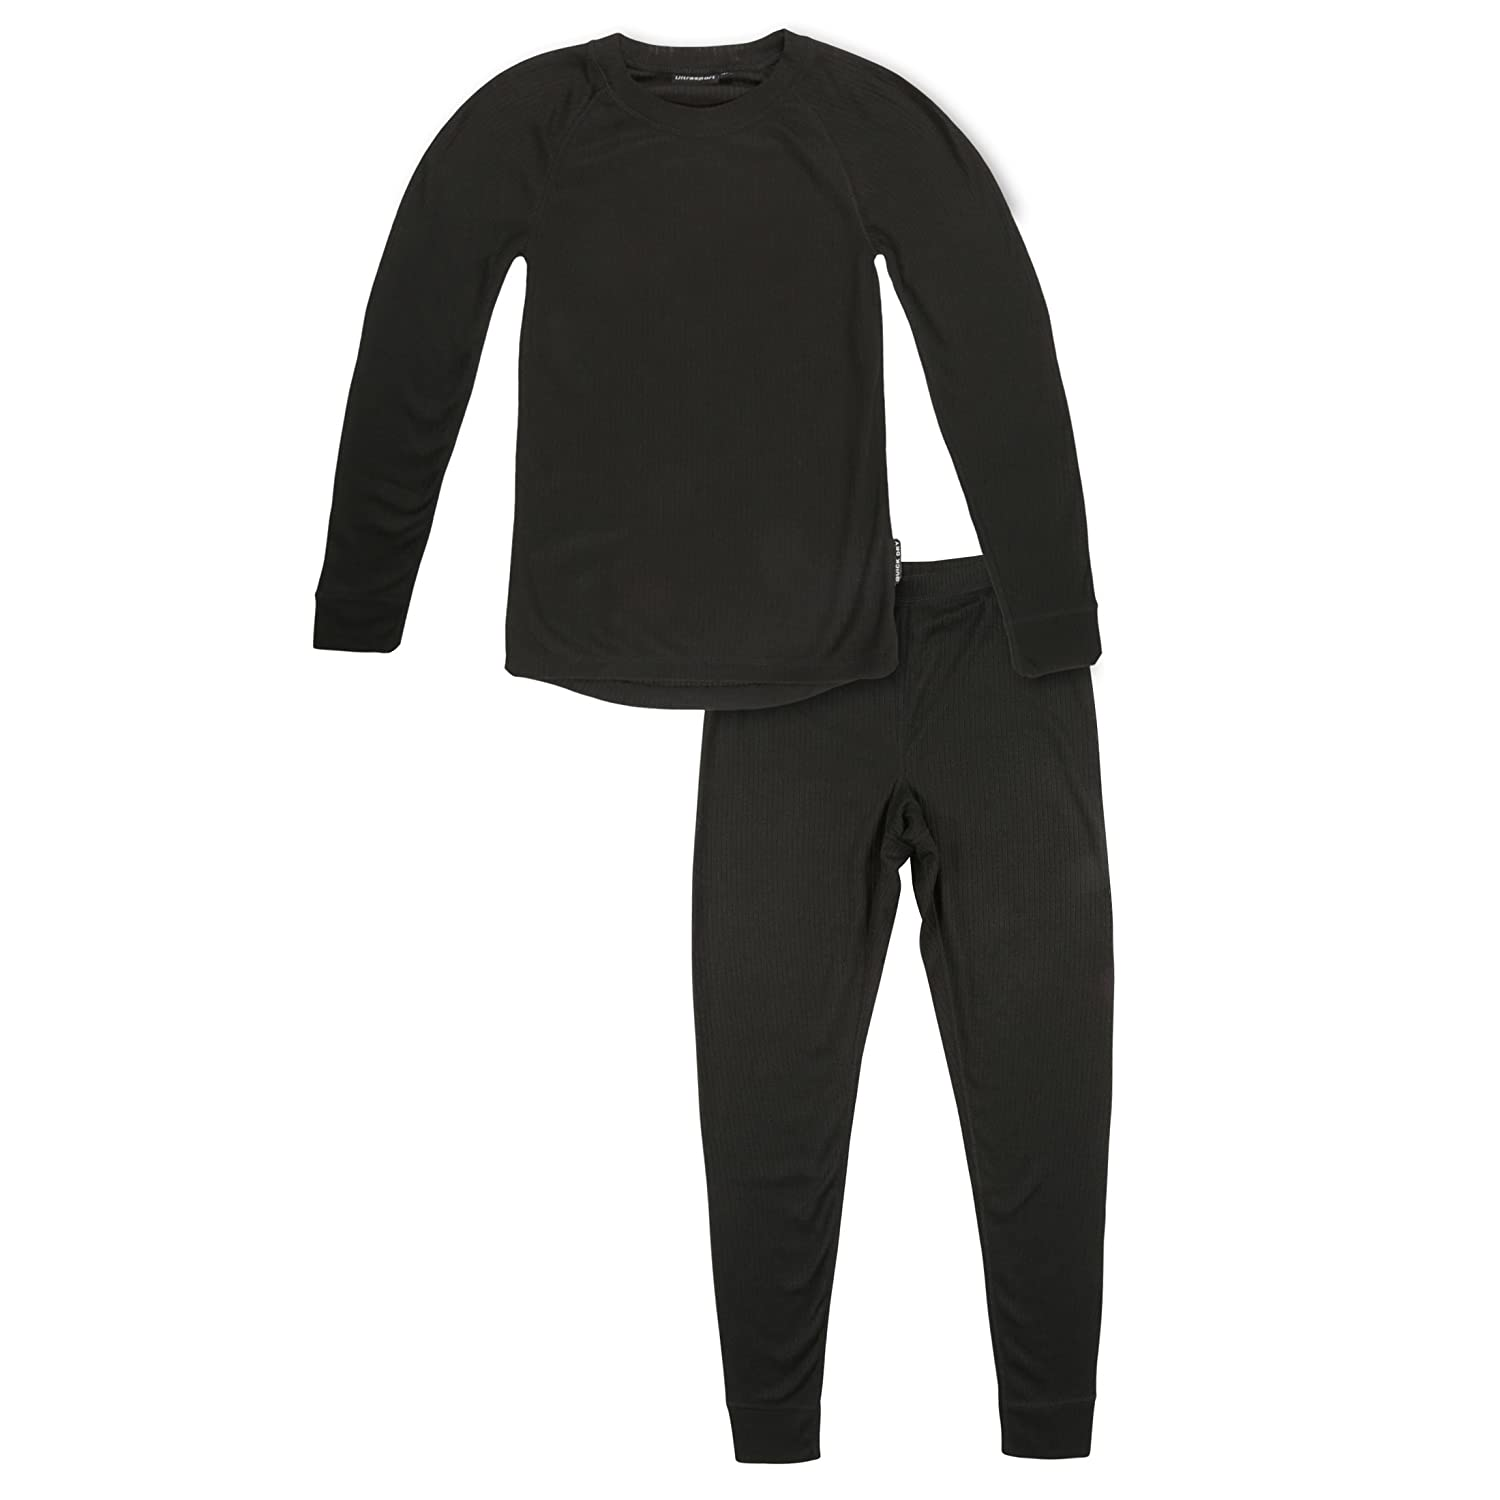 Ultrasport Thermal Underwear Set Conjunto, Niñ os Niños 1062